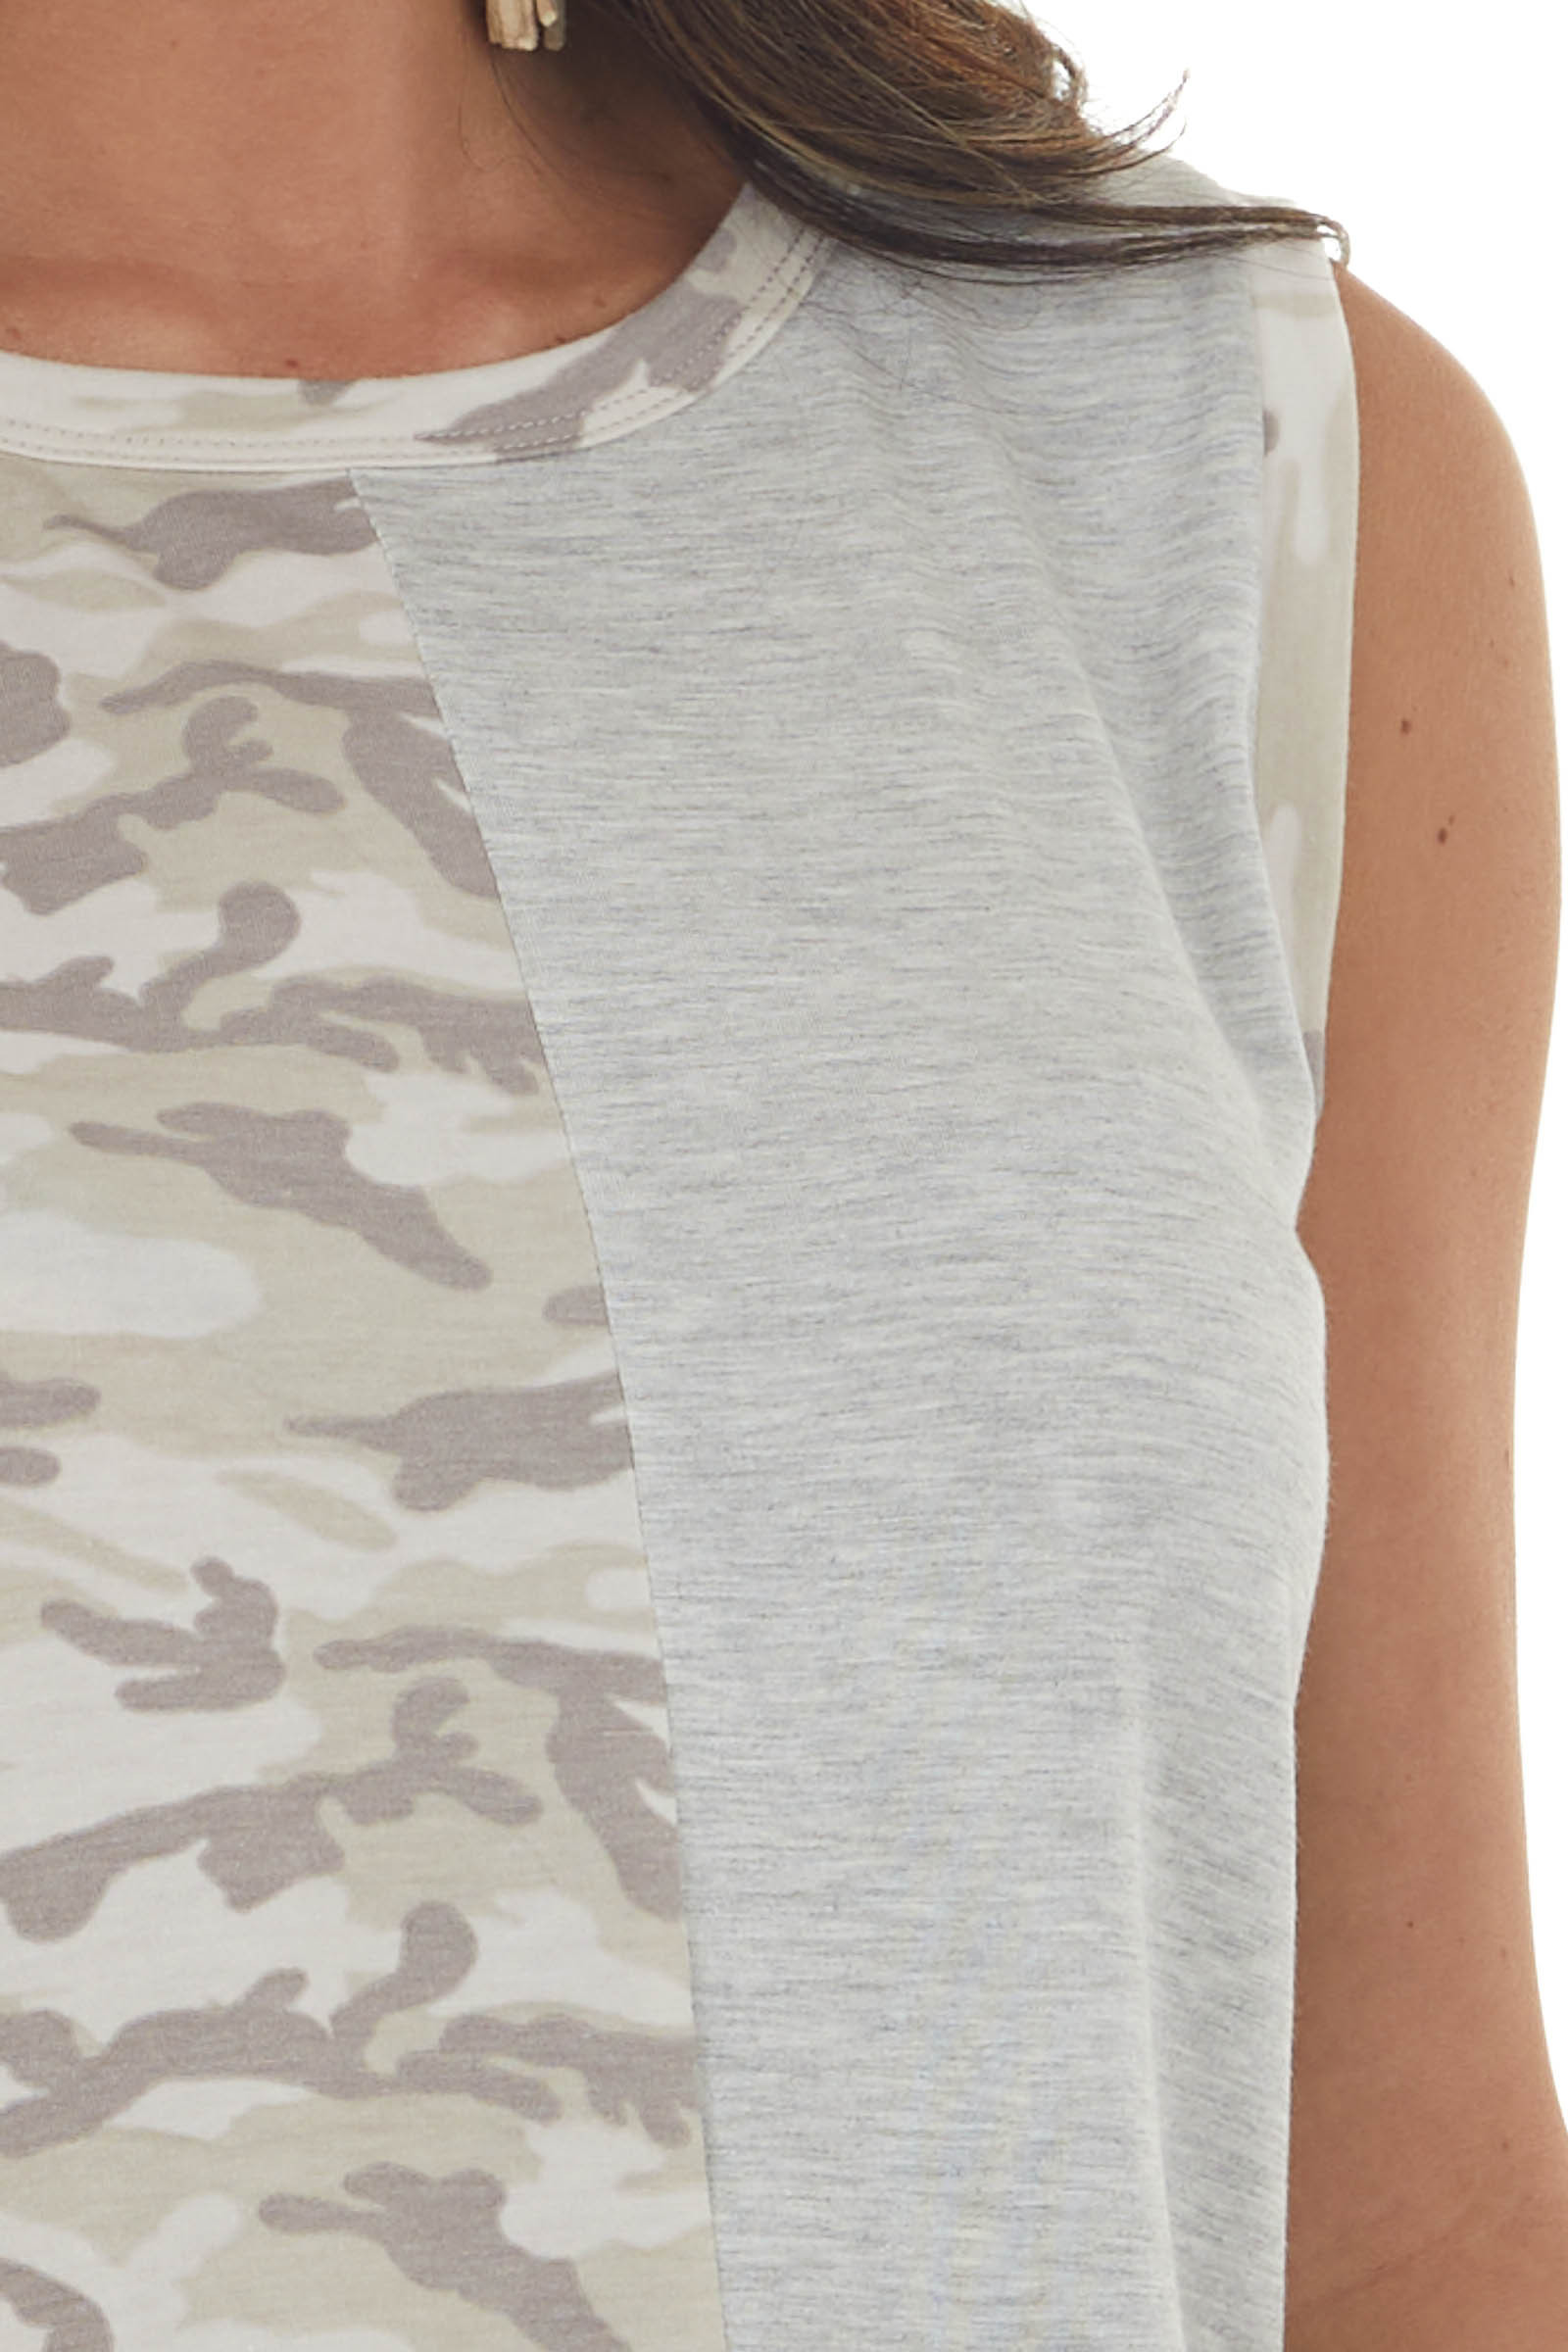 Heather Grey Muscle Tank with Camo Contrast